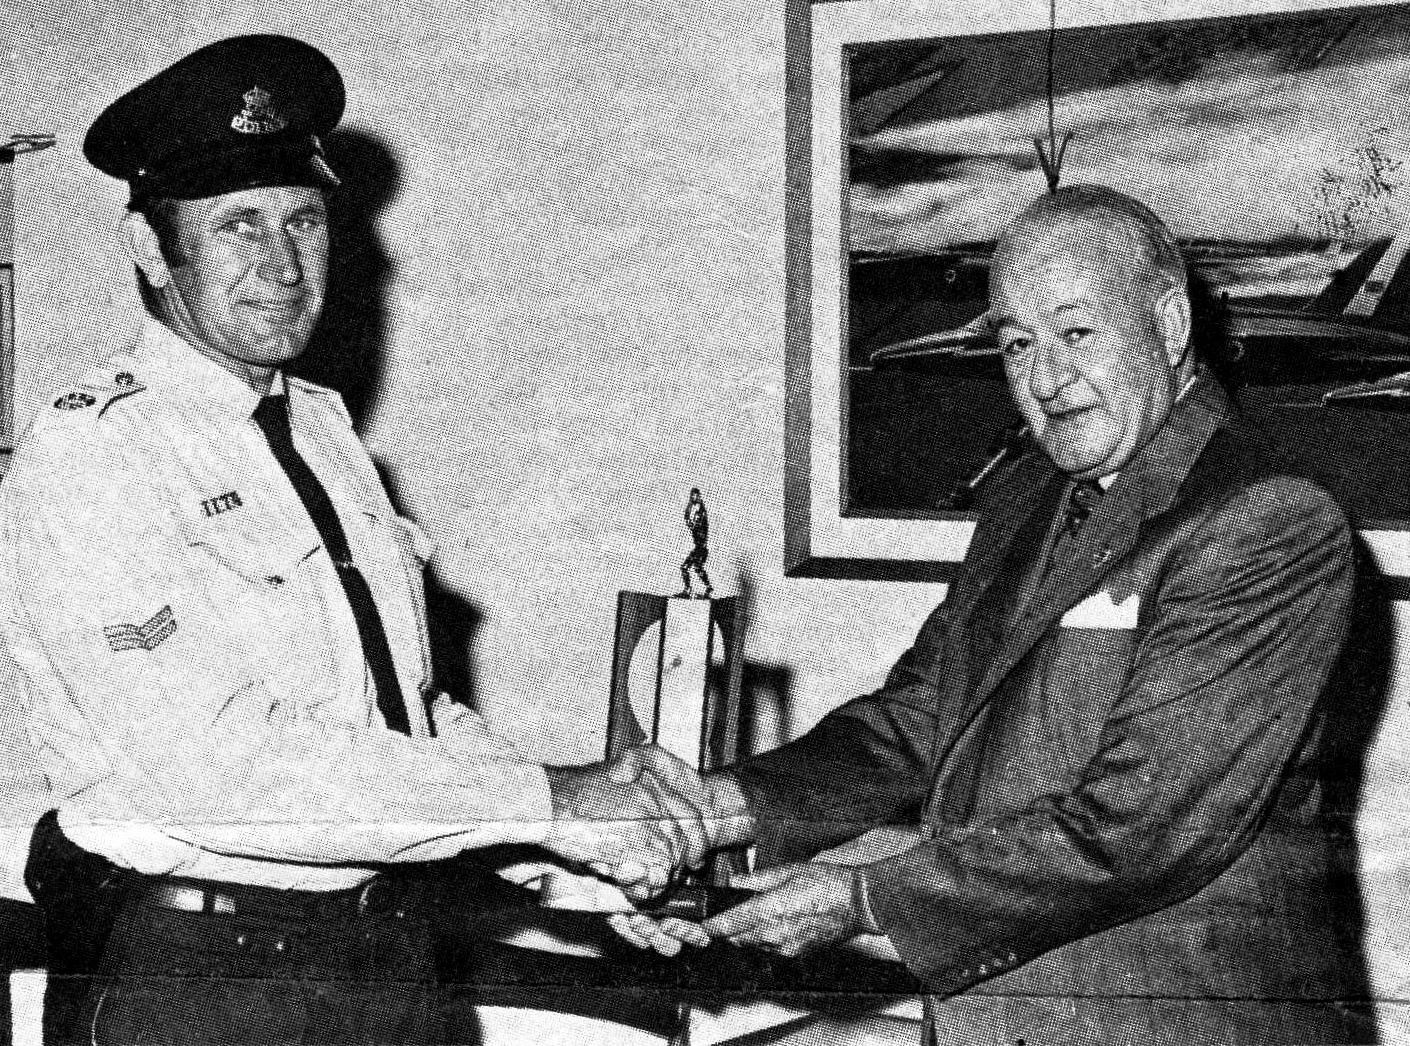 Our photograph shows Sgt Ellis Noack presenting the 1972 premiership Trophy to the then patron of the club, NSW Police Commissioner, Fred Hanson.